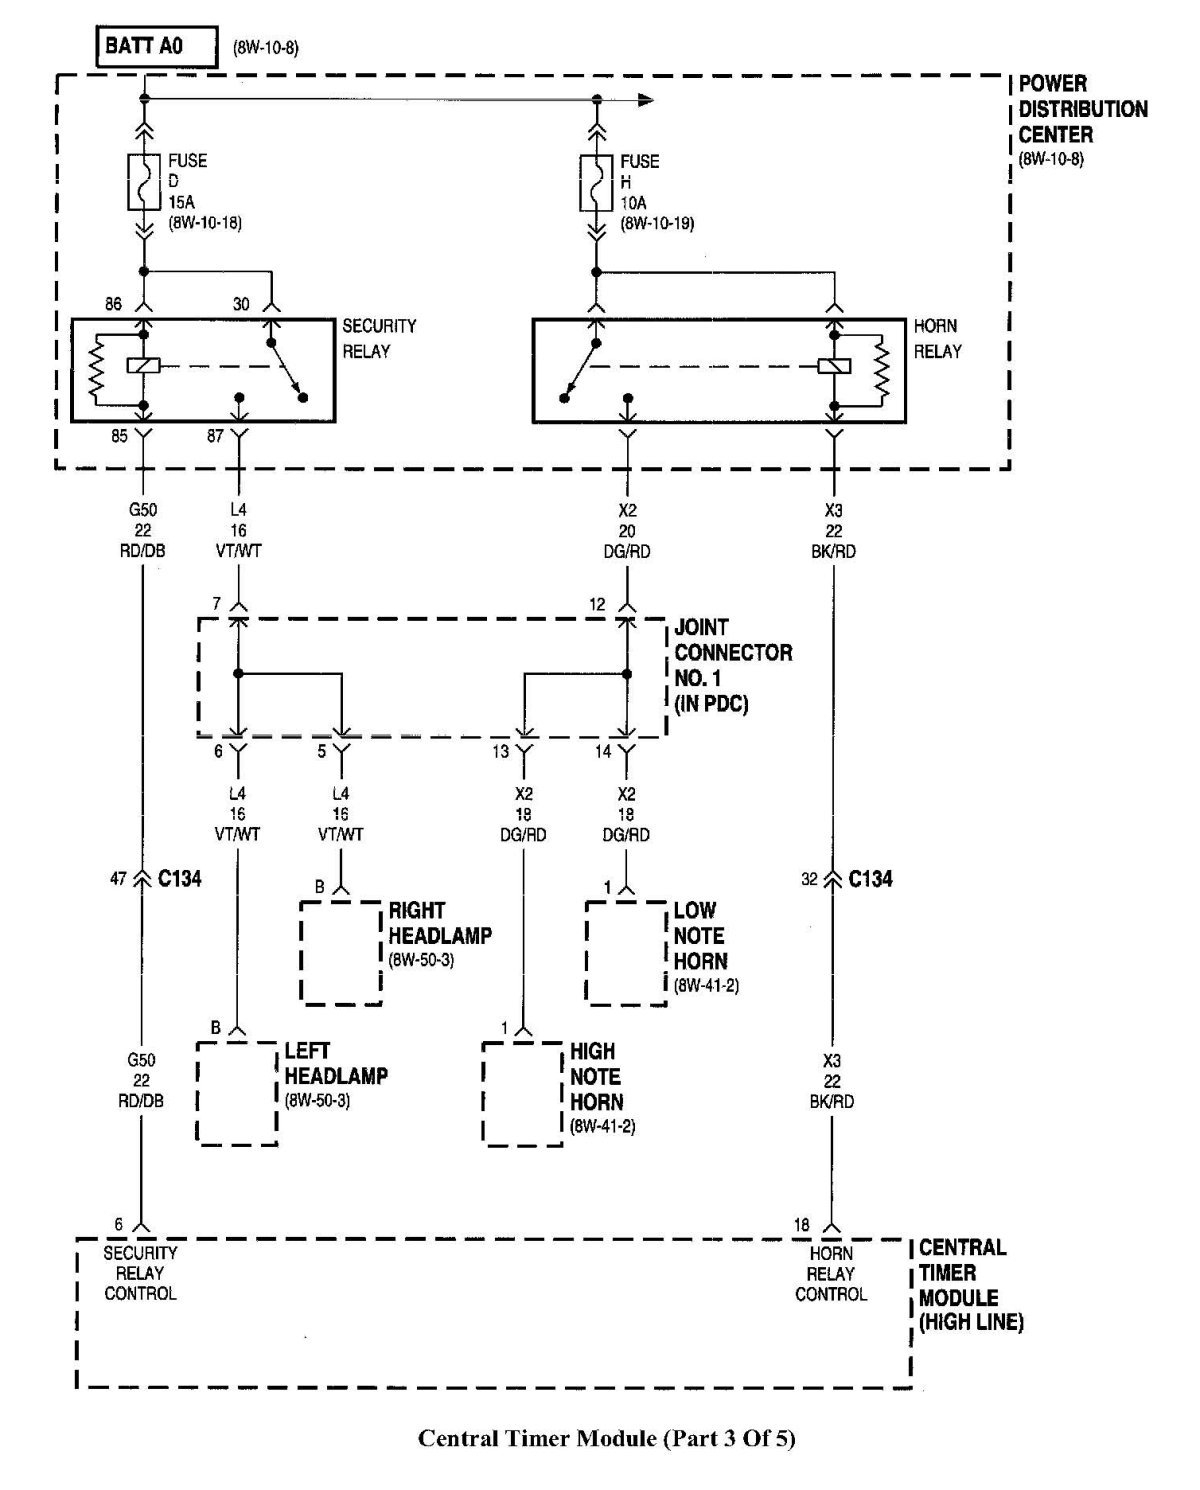 Wiring Diagram For 1998 Dodge Ram 3500 - Wiring Diagrams Hubs - 2005 Dodge Ram 3500 Trailer Wiring Diagram